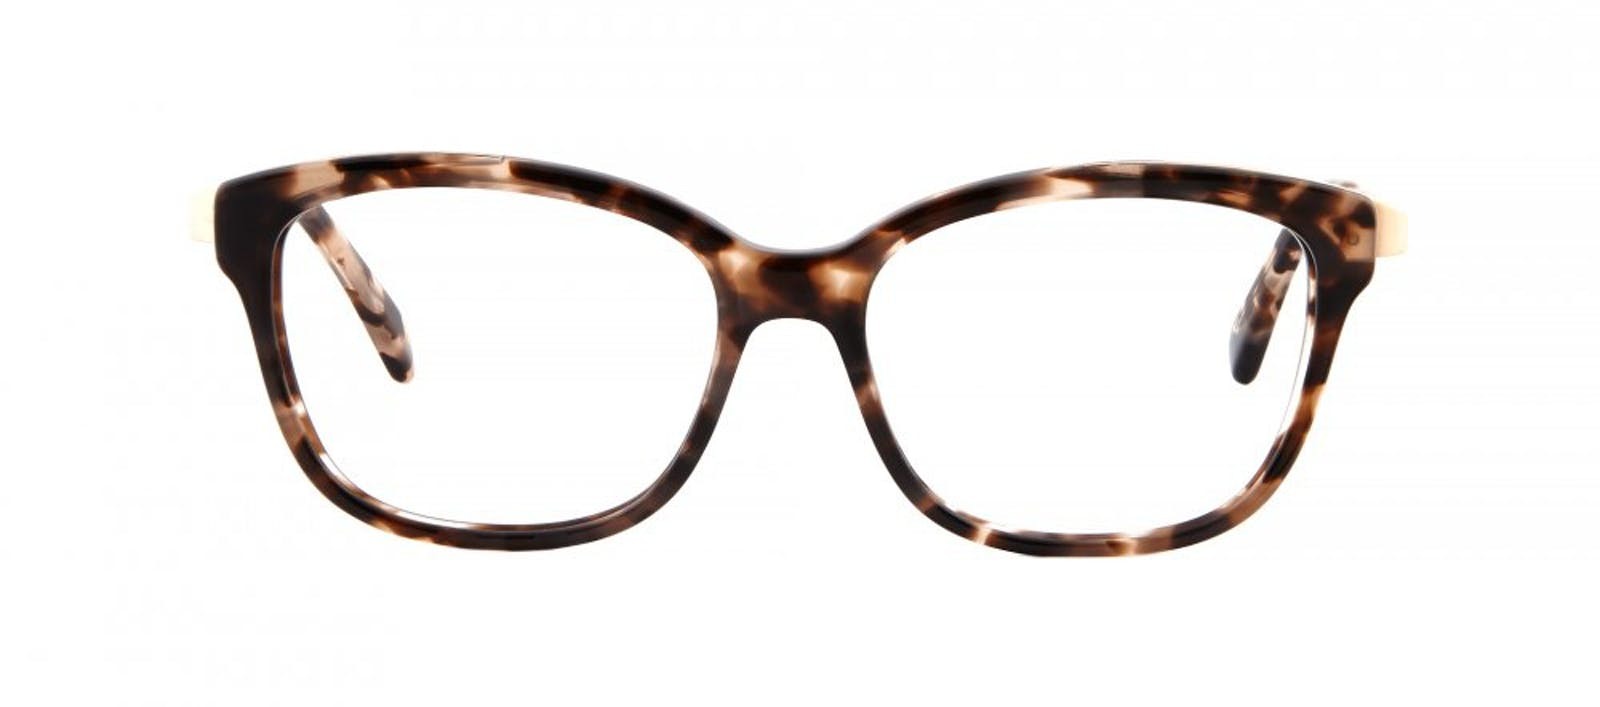 f8859bb6a768 Alice. Previous. Affordable Fashion Glasses Square Eyeglasses Women Alice  Midnight Lace Front ...